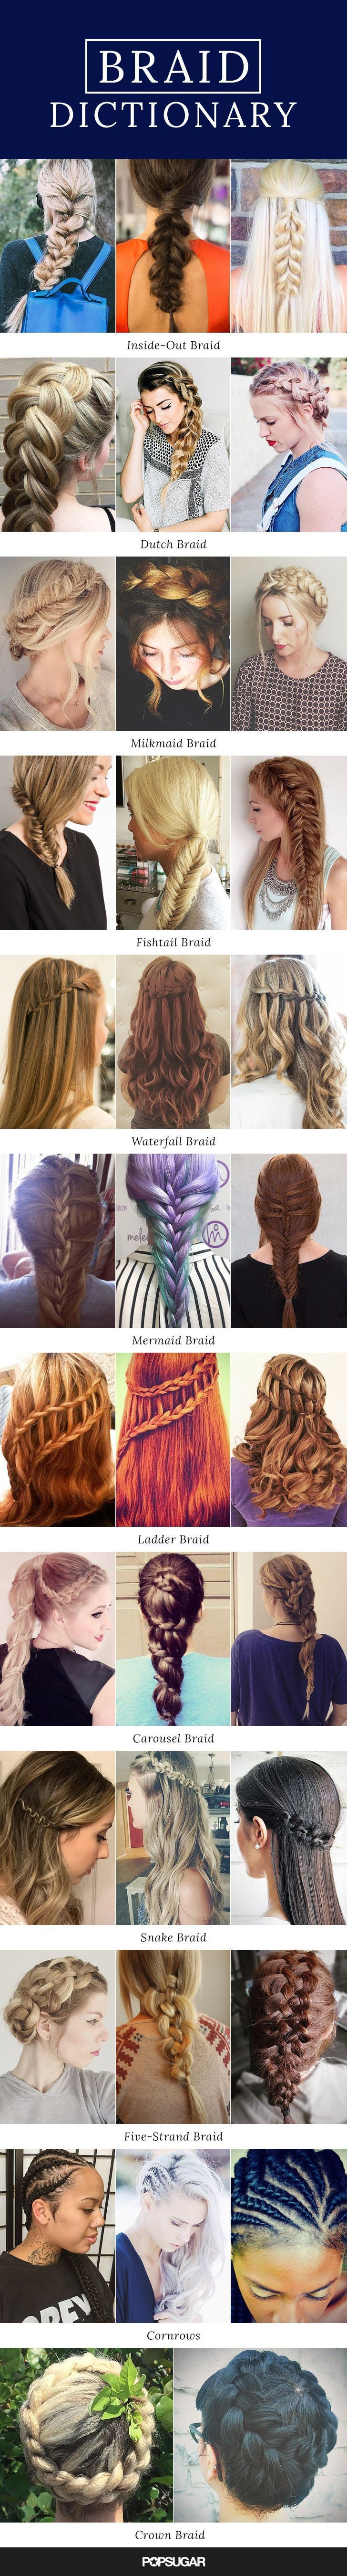 best for macayla images on pinterest hair dos make up looks